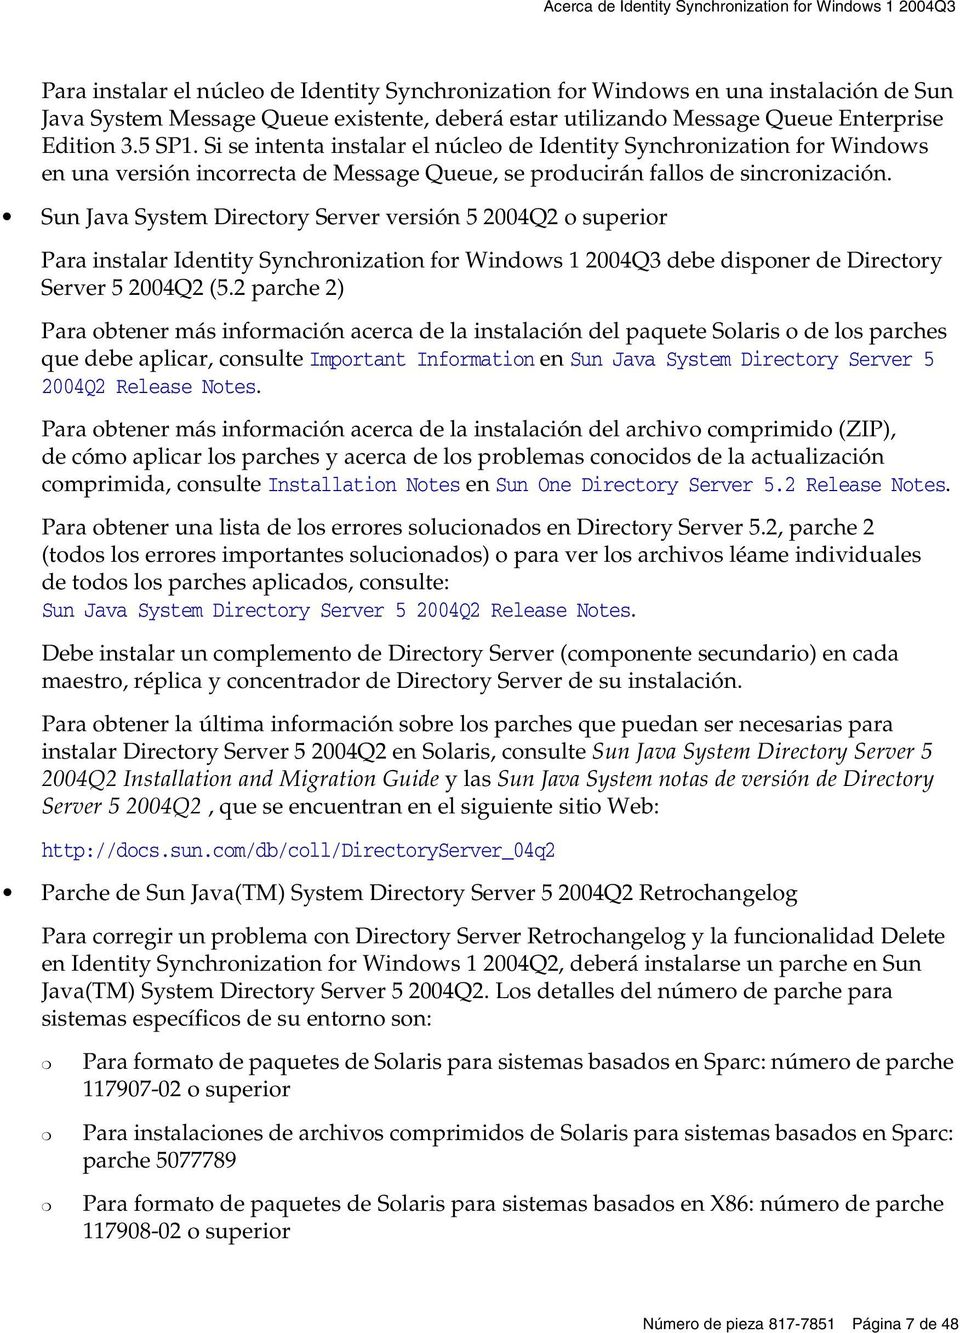 Si se intenta instalar el núcleo de Identity Synchronization for Windows en una versión incorrecta de Message Queue, se producirán fallos de sincronización.